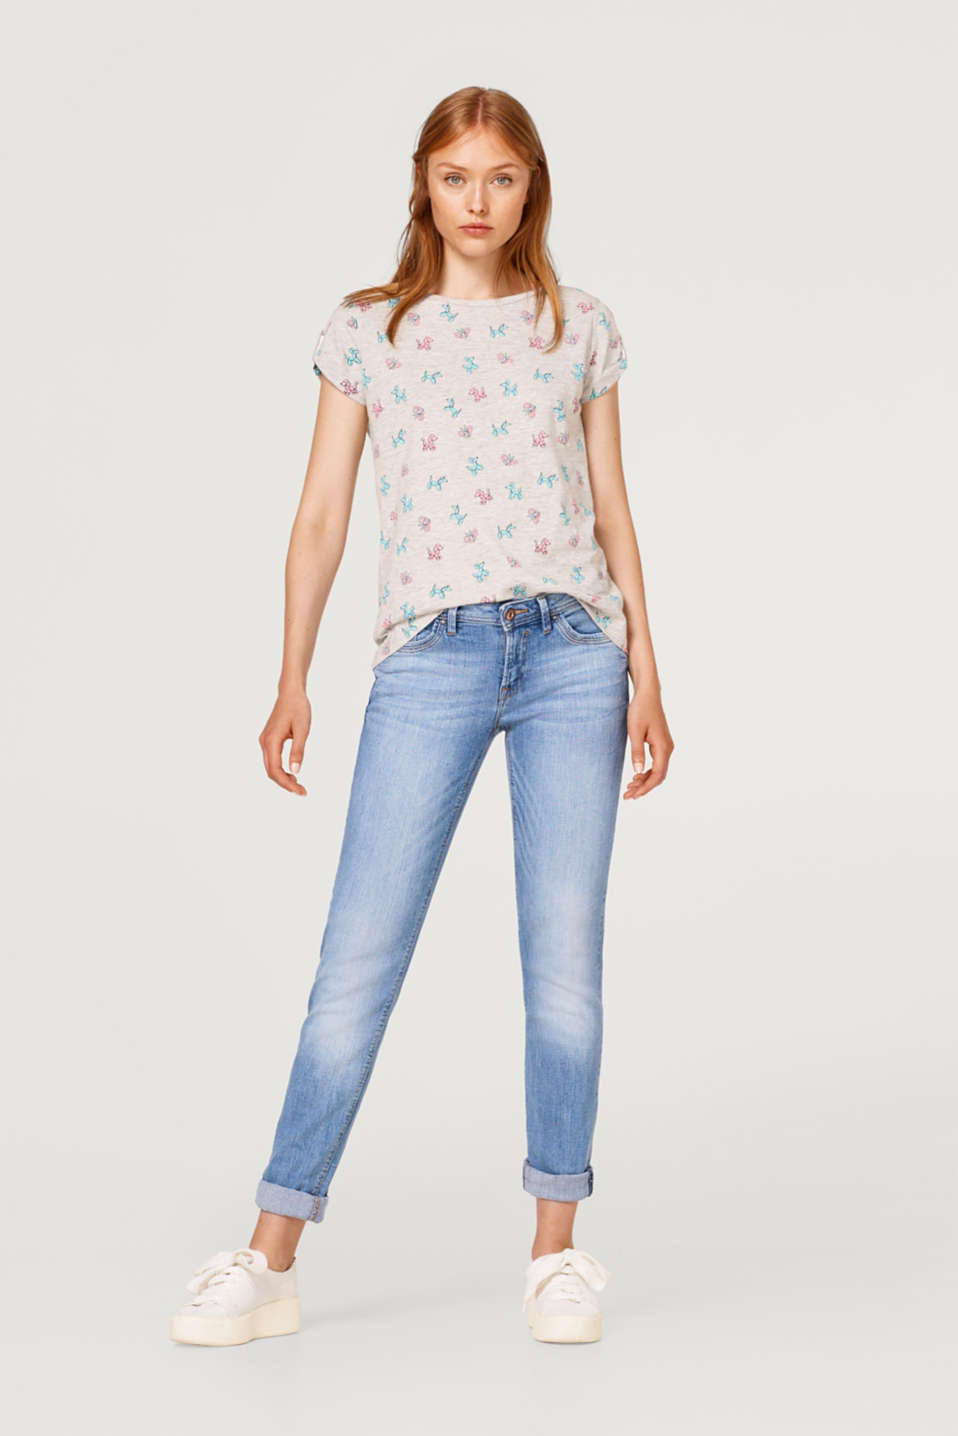 Mottled printed T-shirt with cut-outs